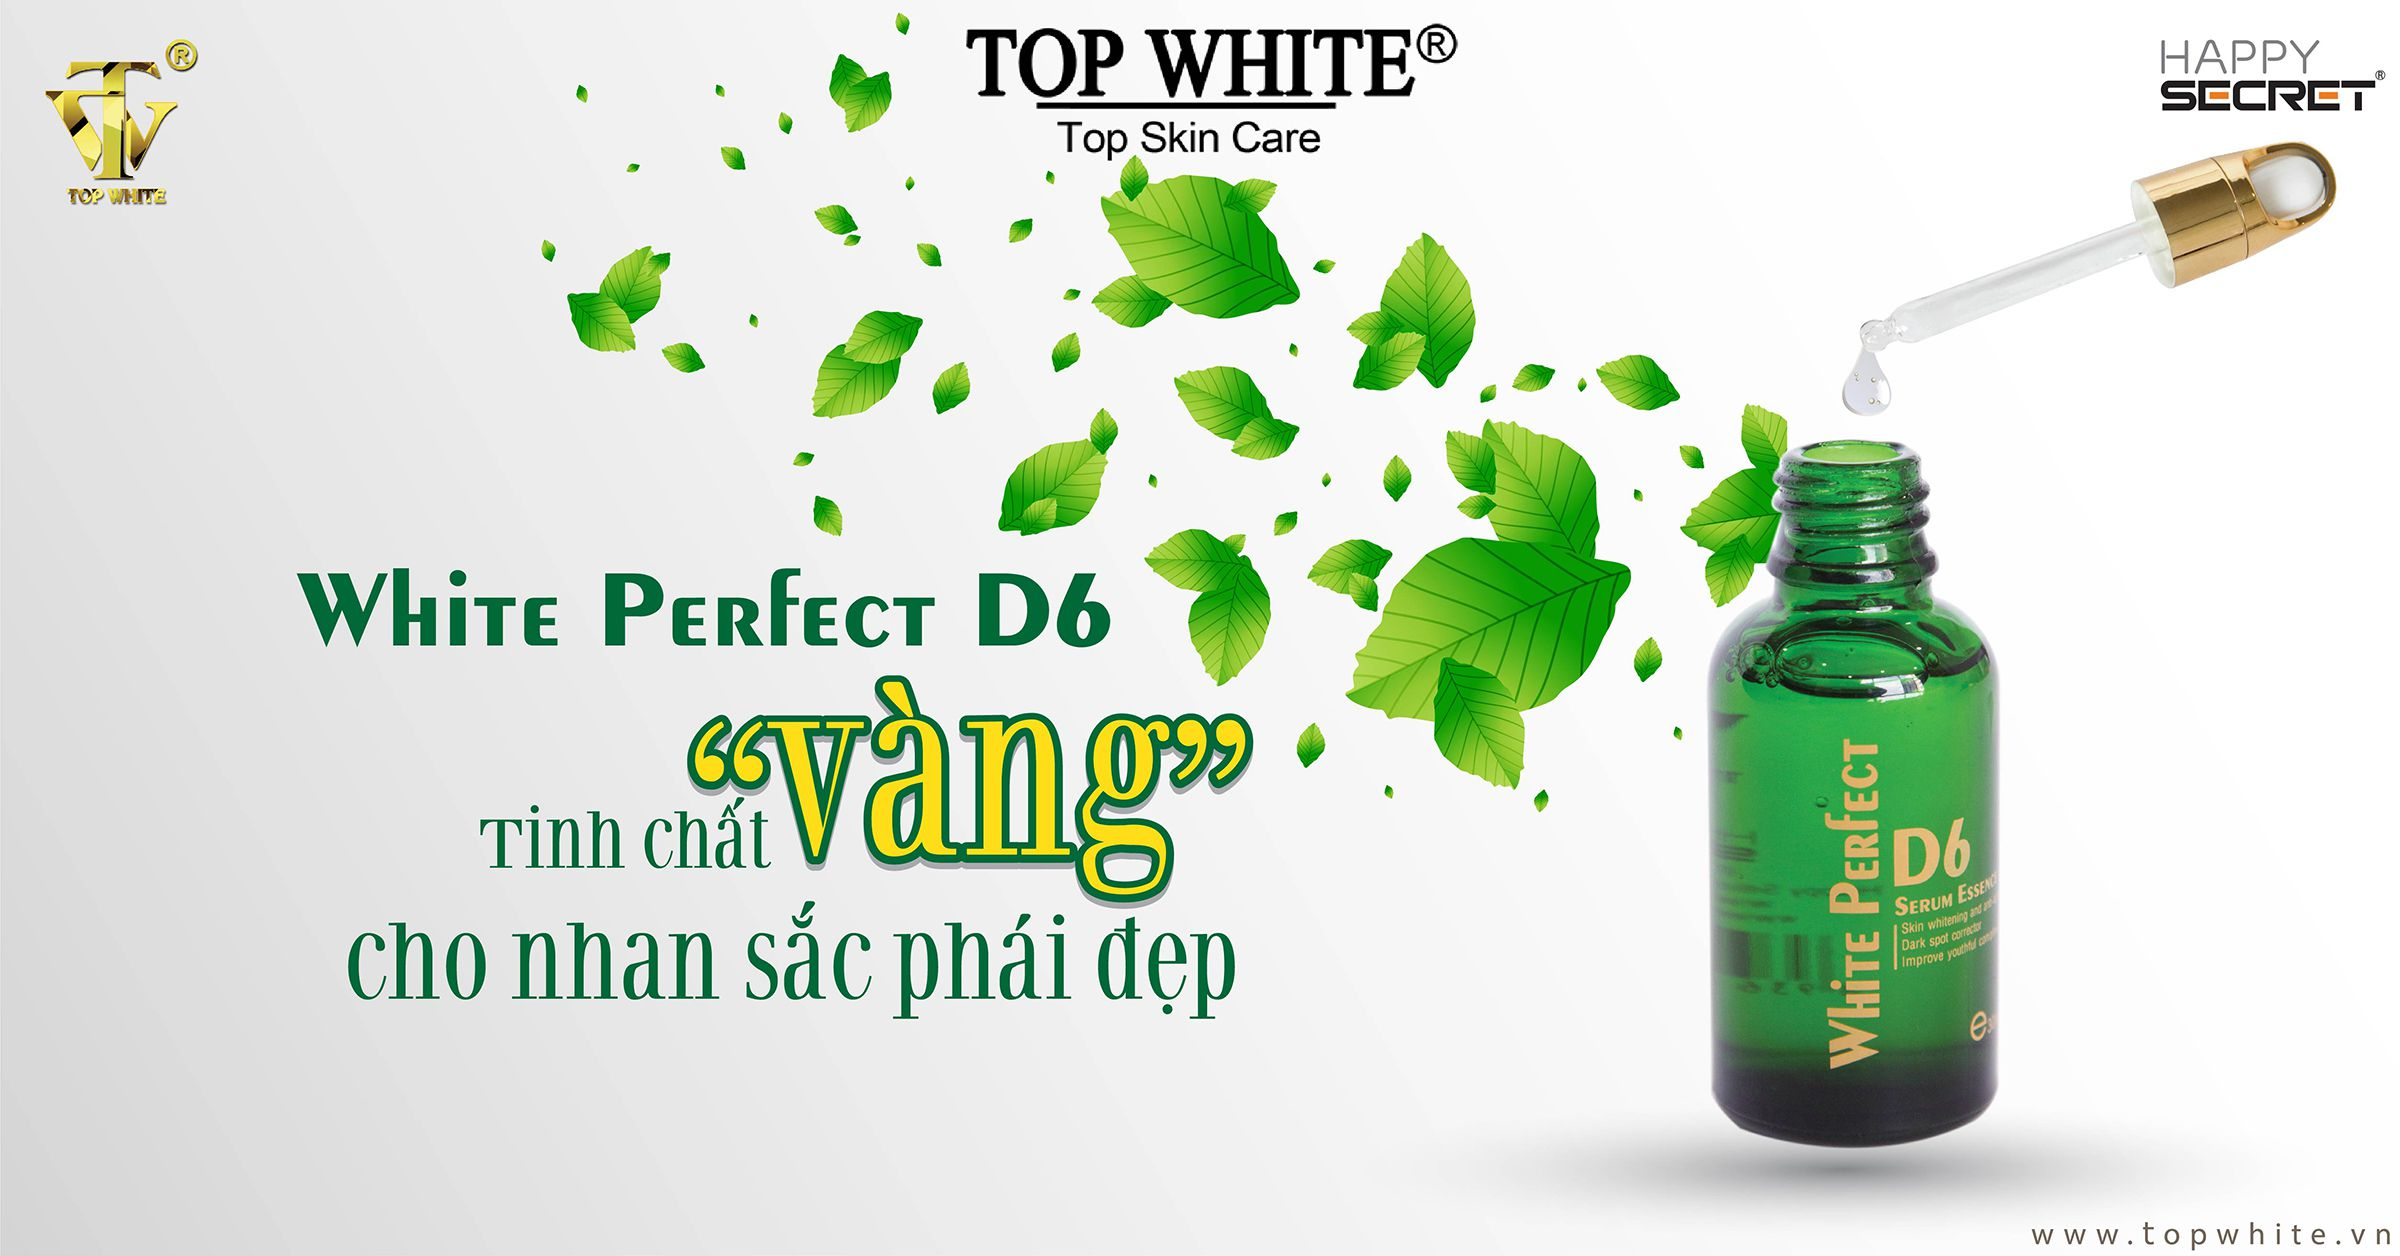 serum essence top white d6